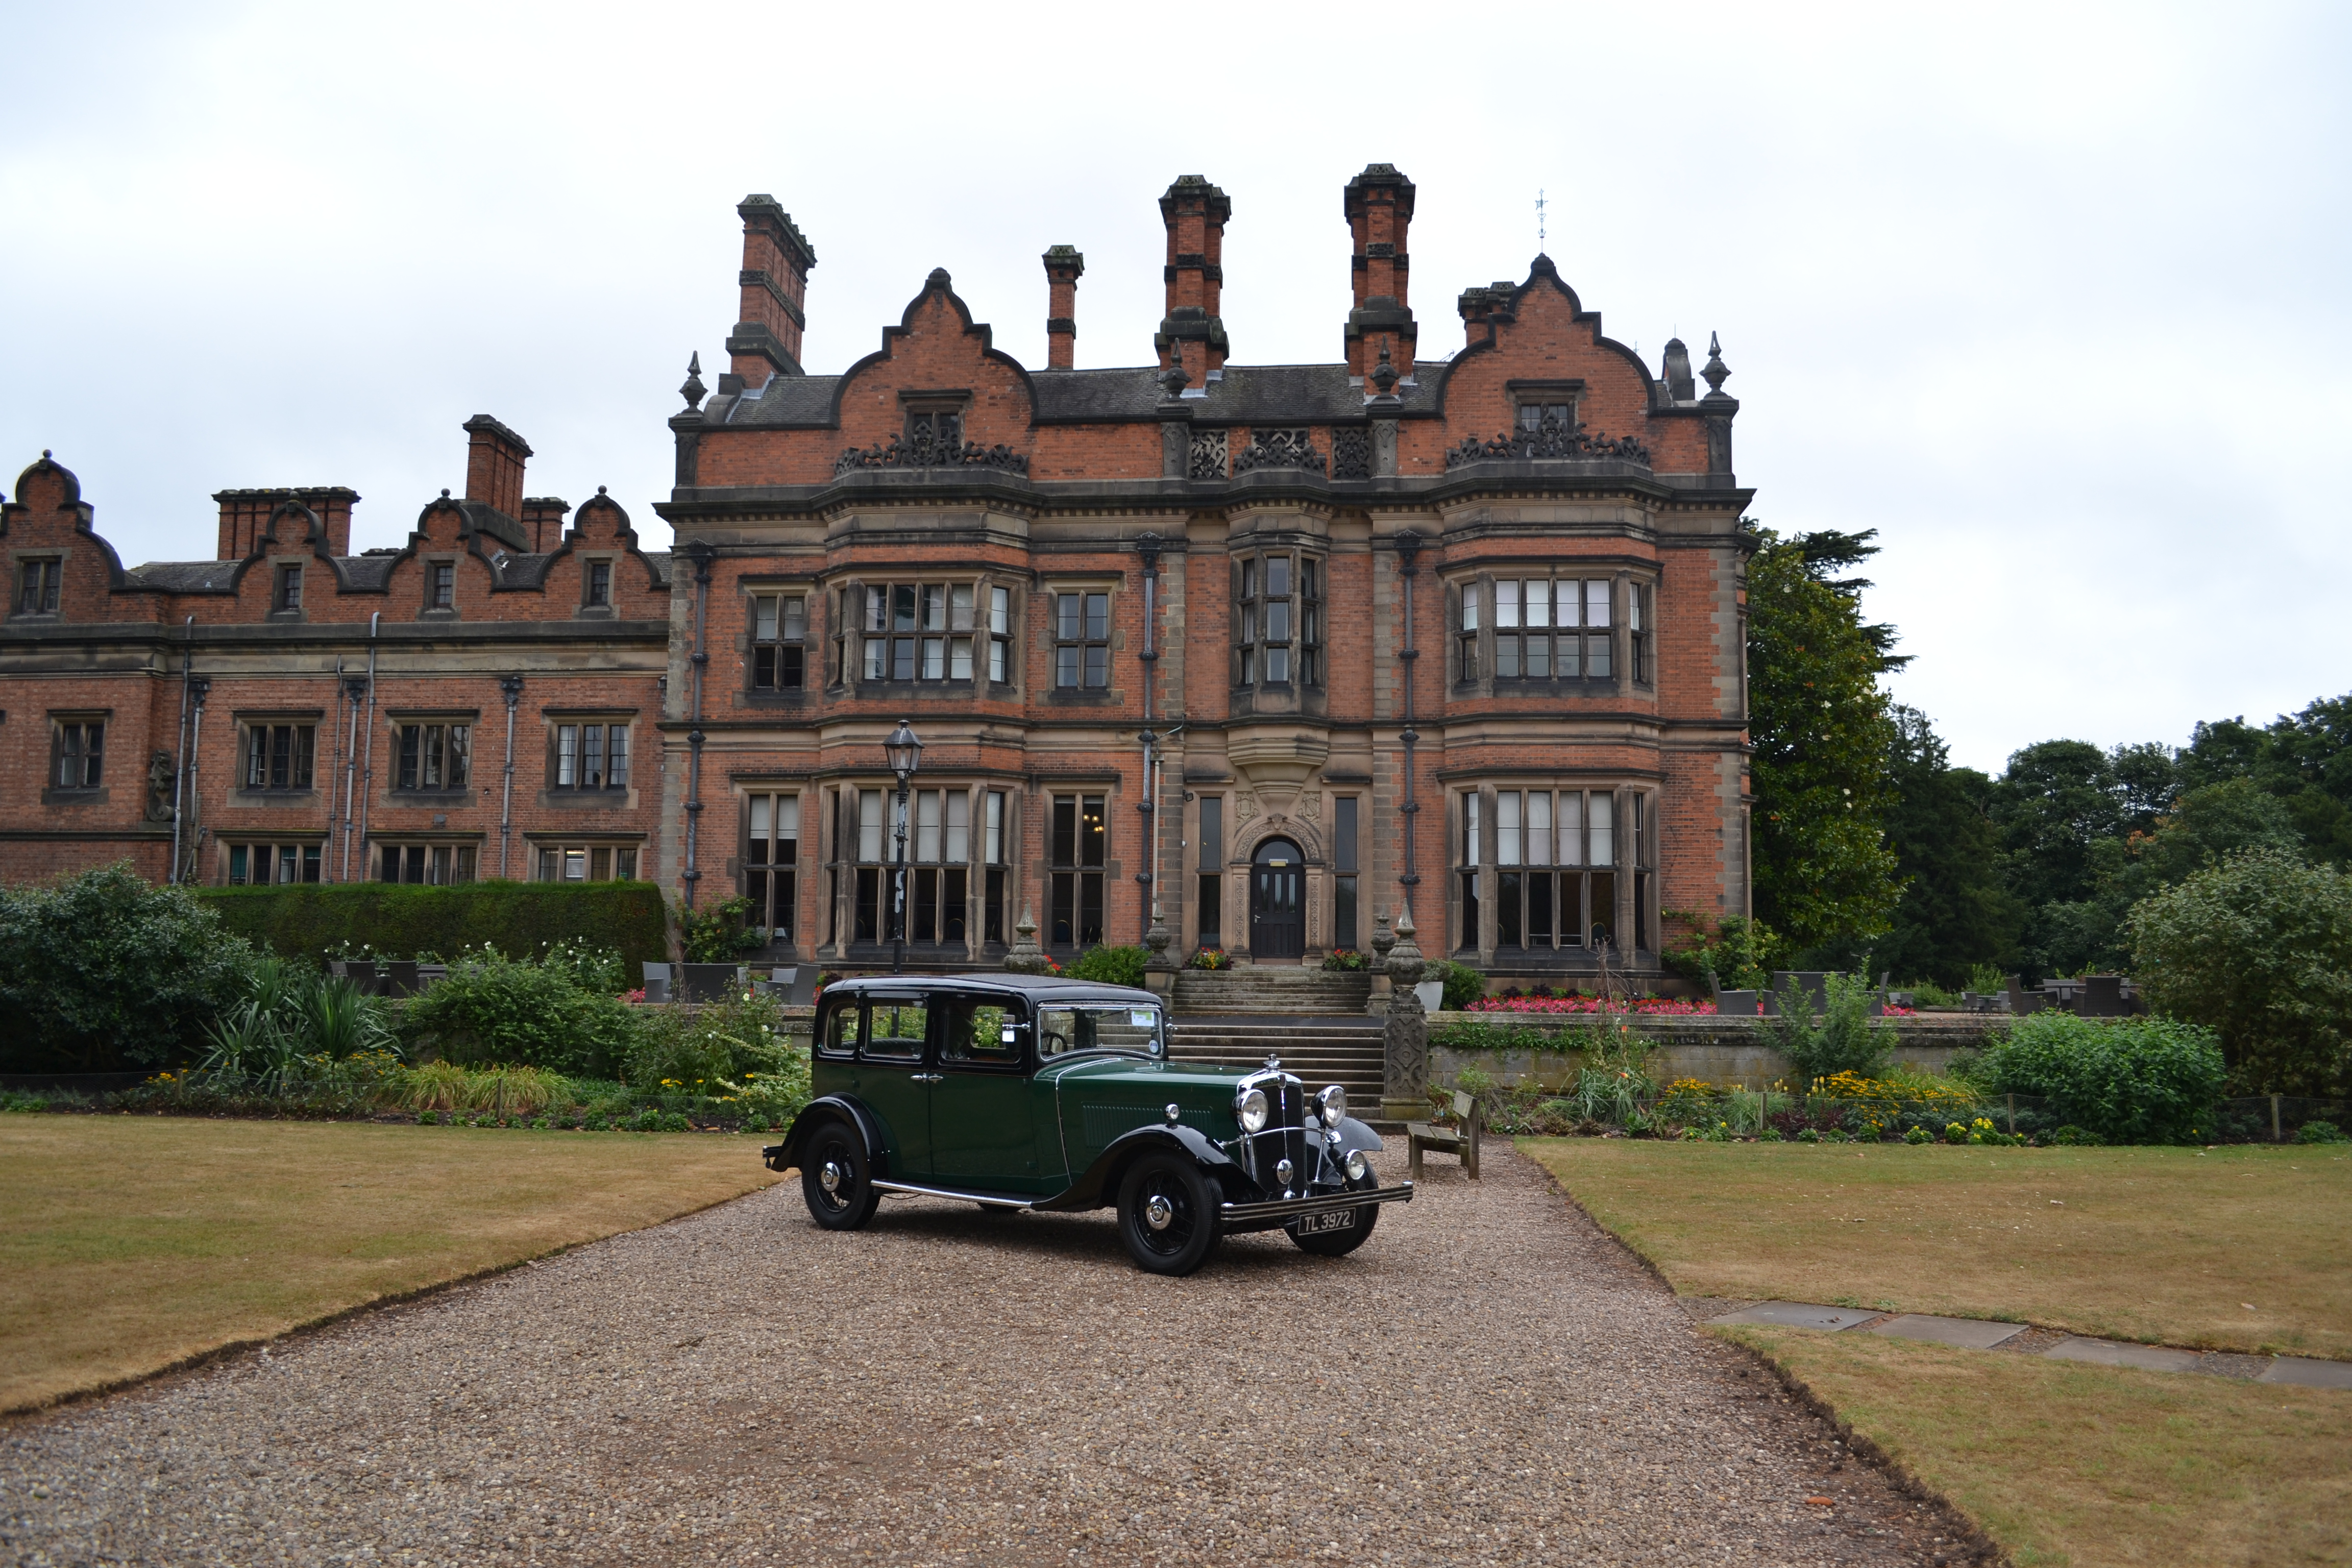 Rain doesn't stop play at Beaumanor Hall Nostalgia Show ...